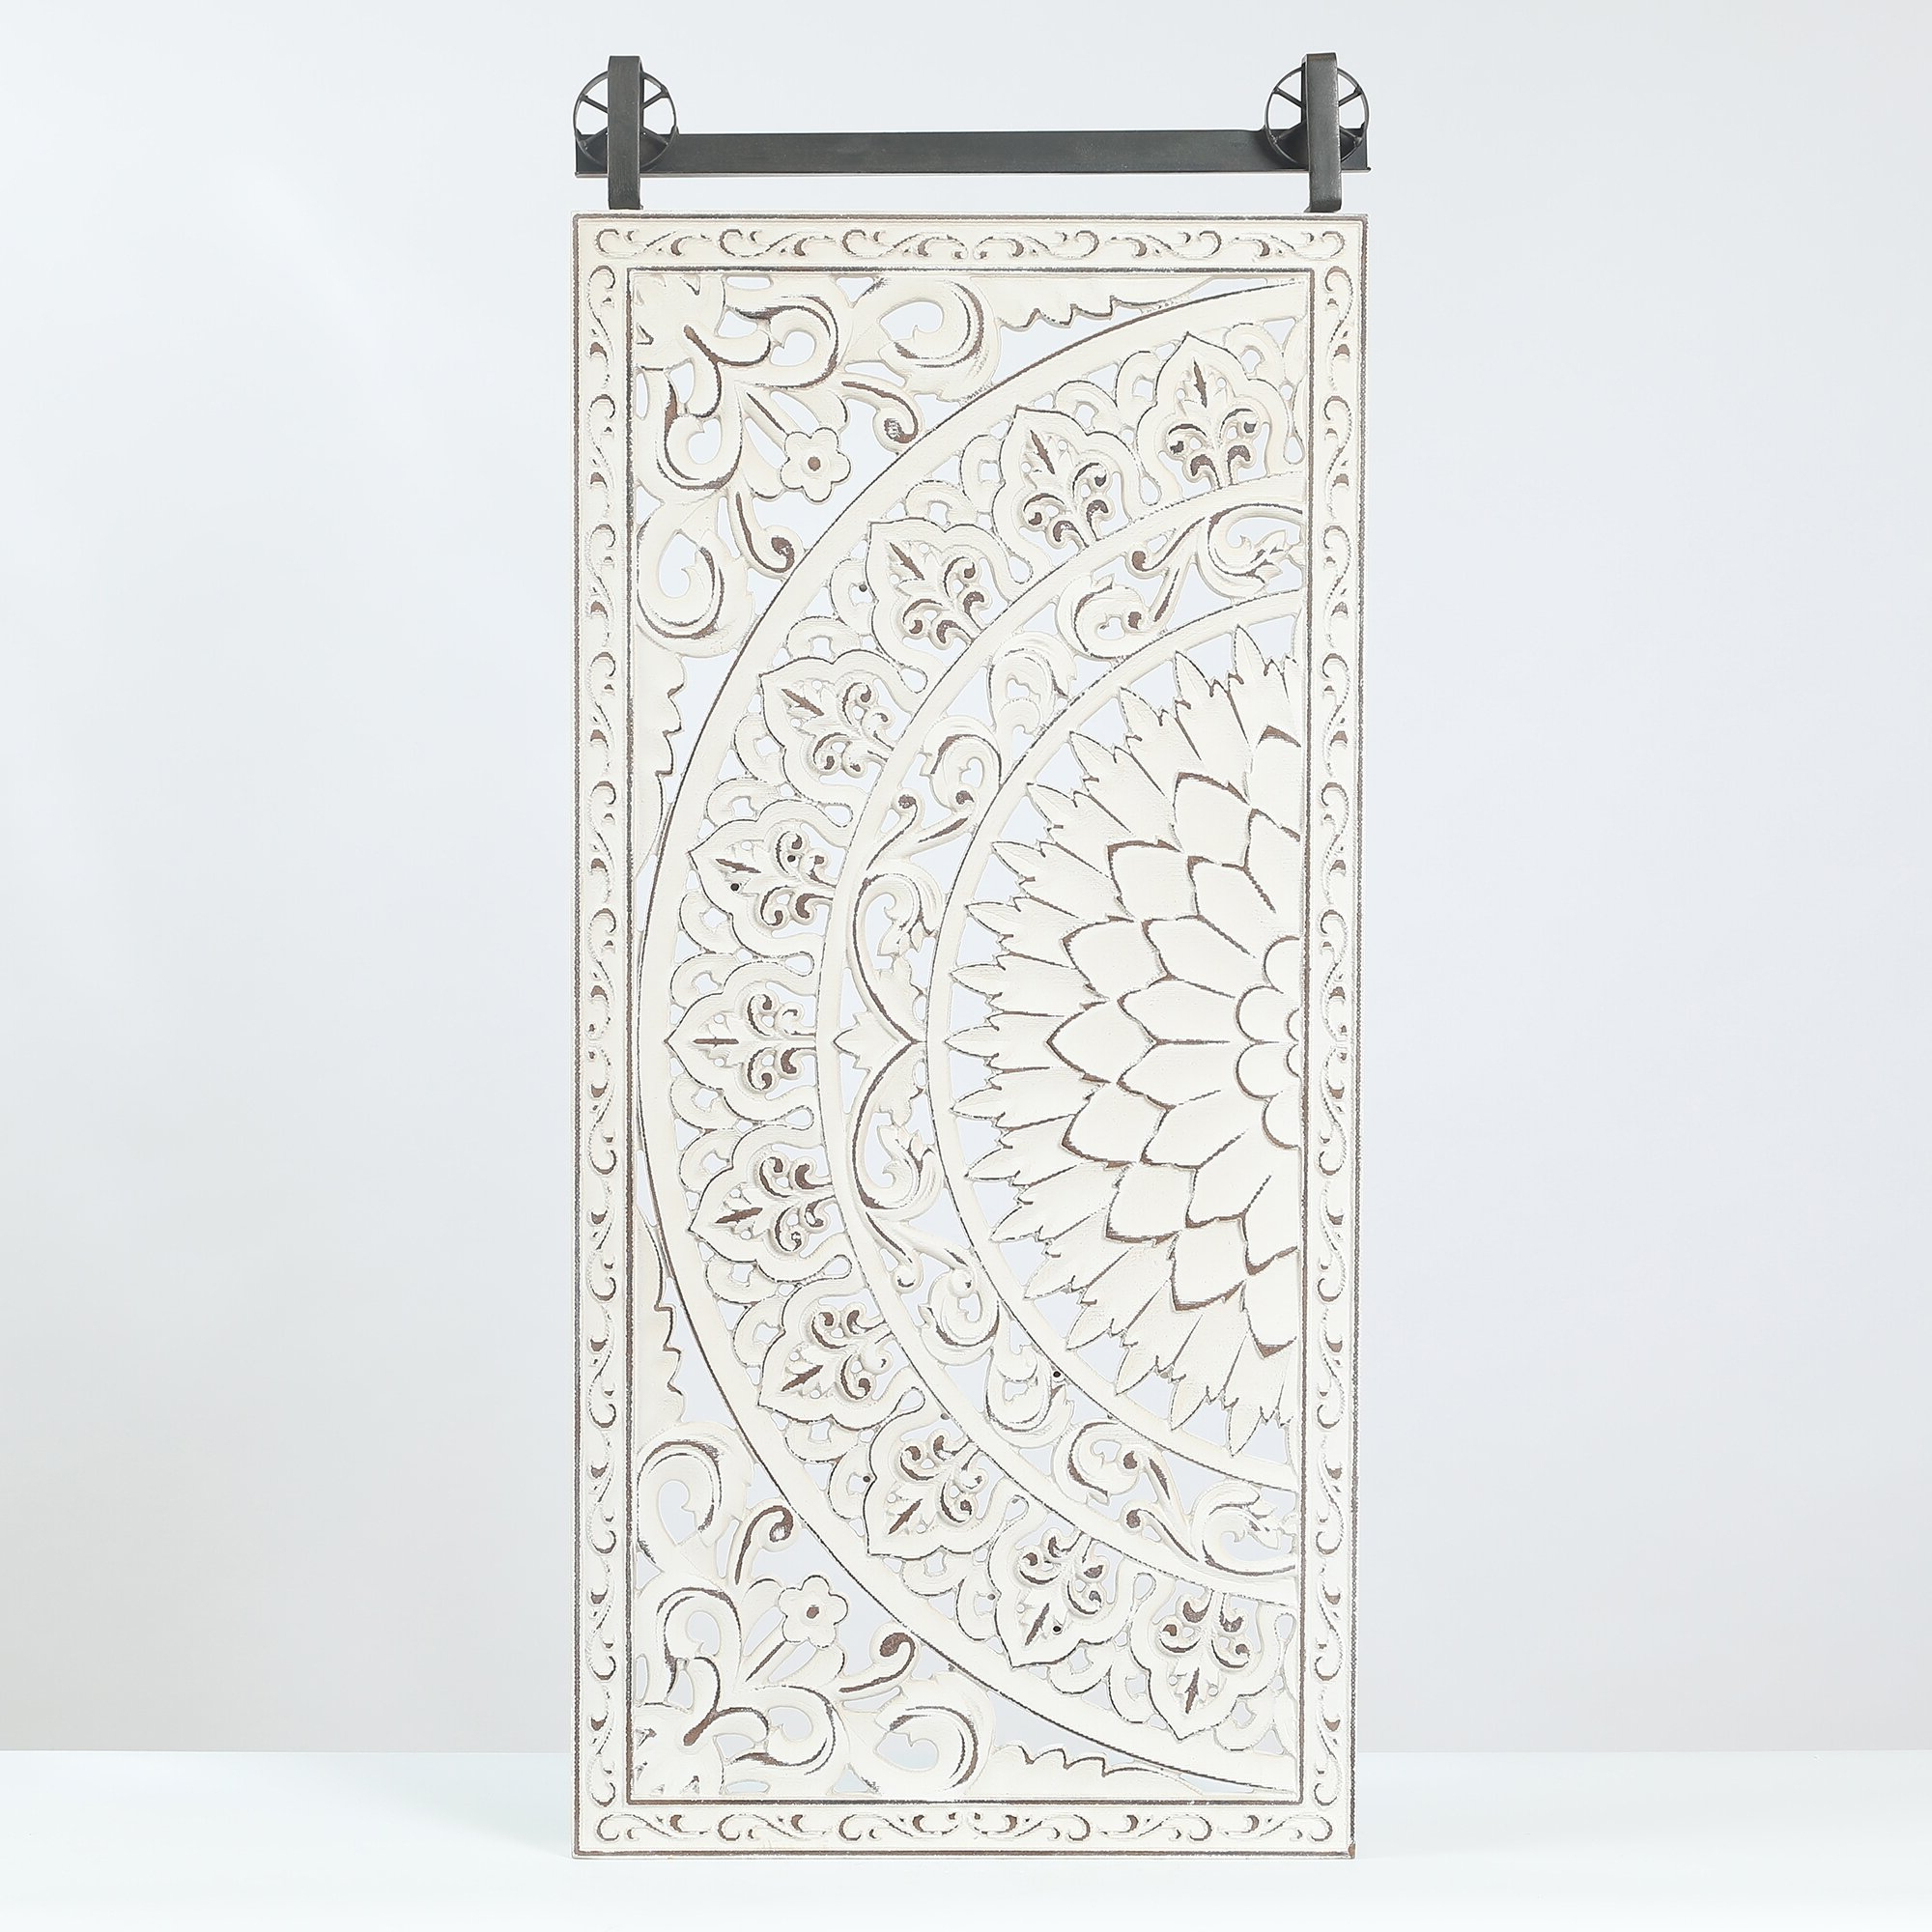 2019 3 Piece Carved Ornate Wall Décor Set Inside Decorative Carved Floral Wall Décor (View 5 of 20)